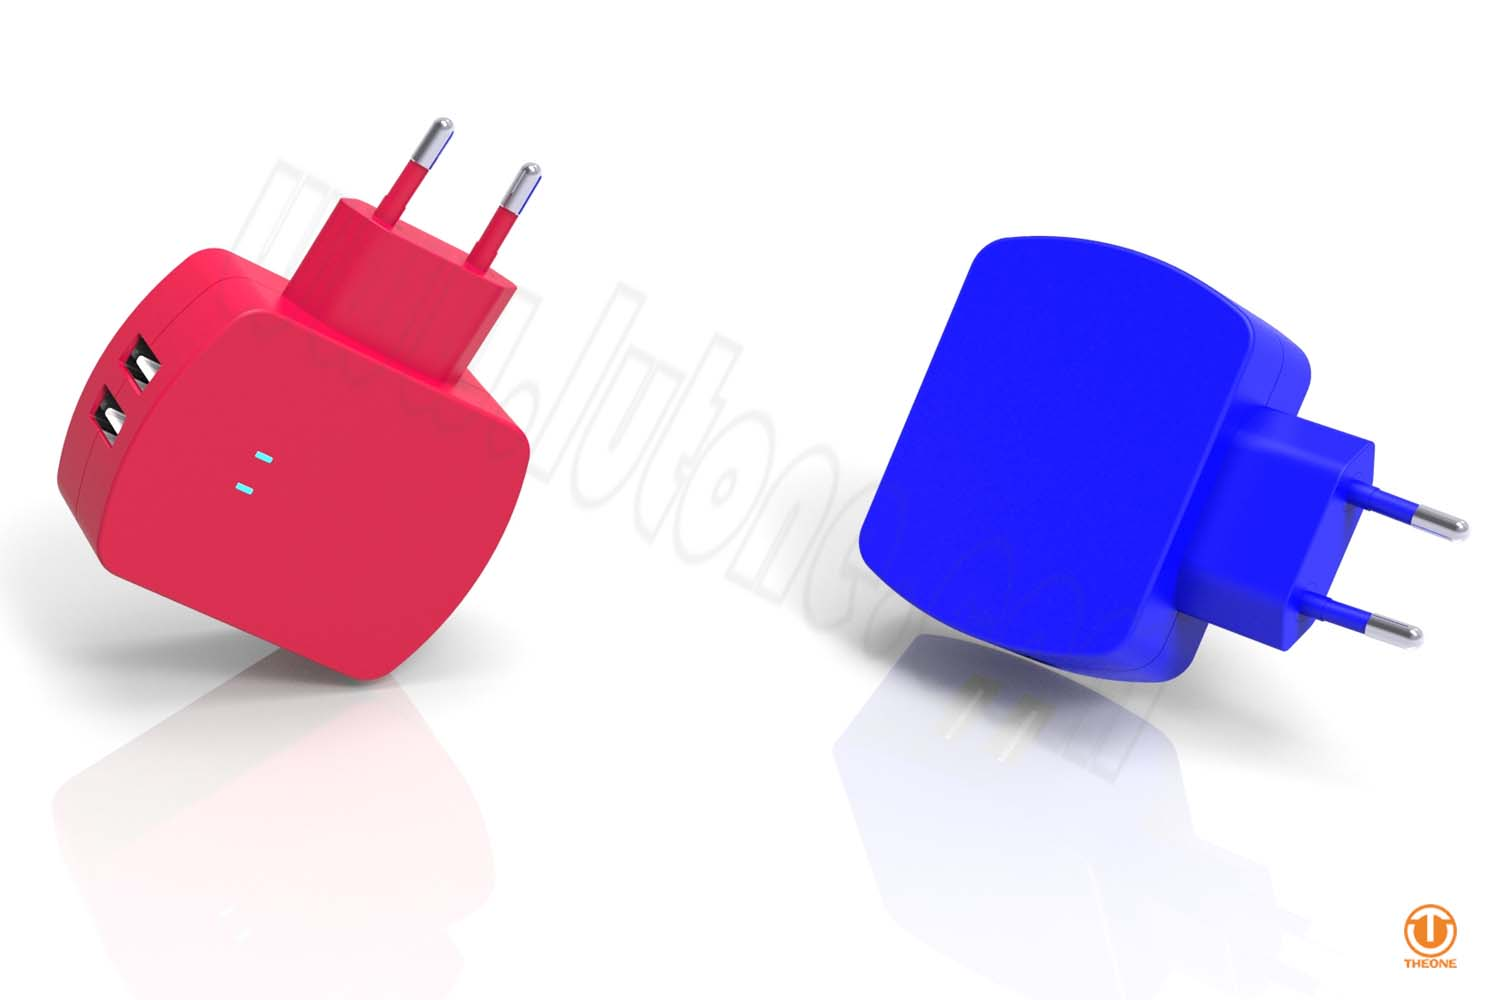 tc02b6-3 dual usb wall charger